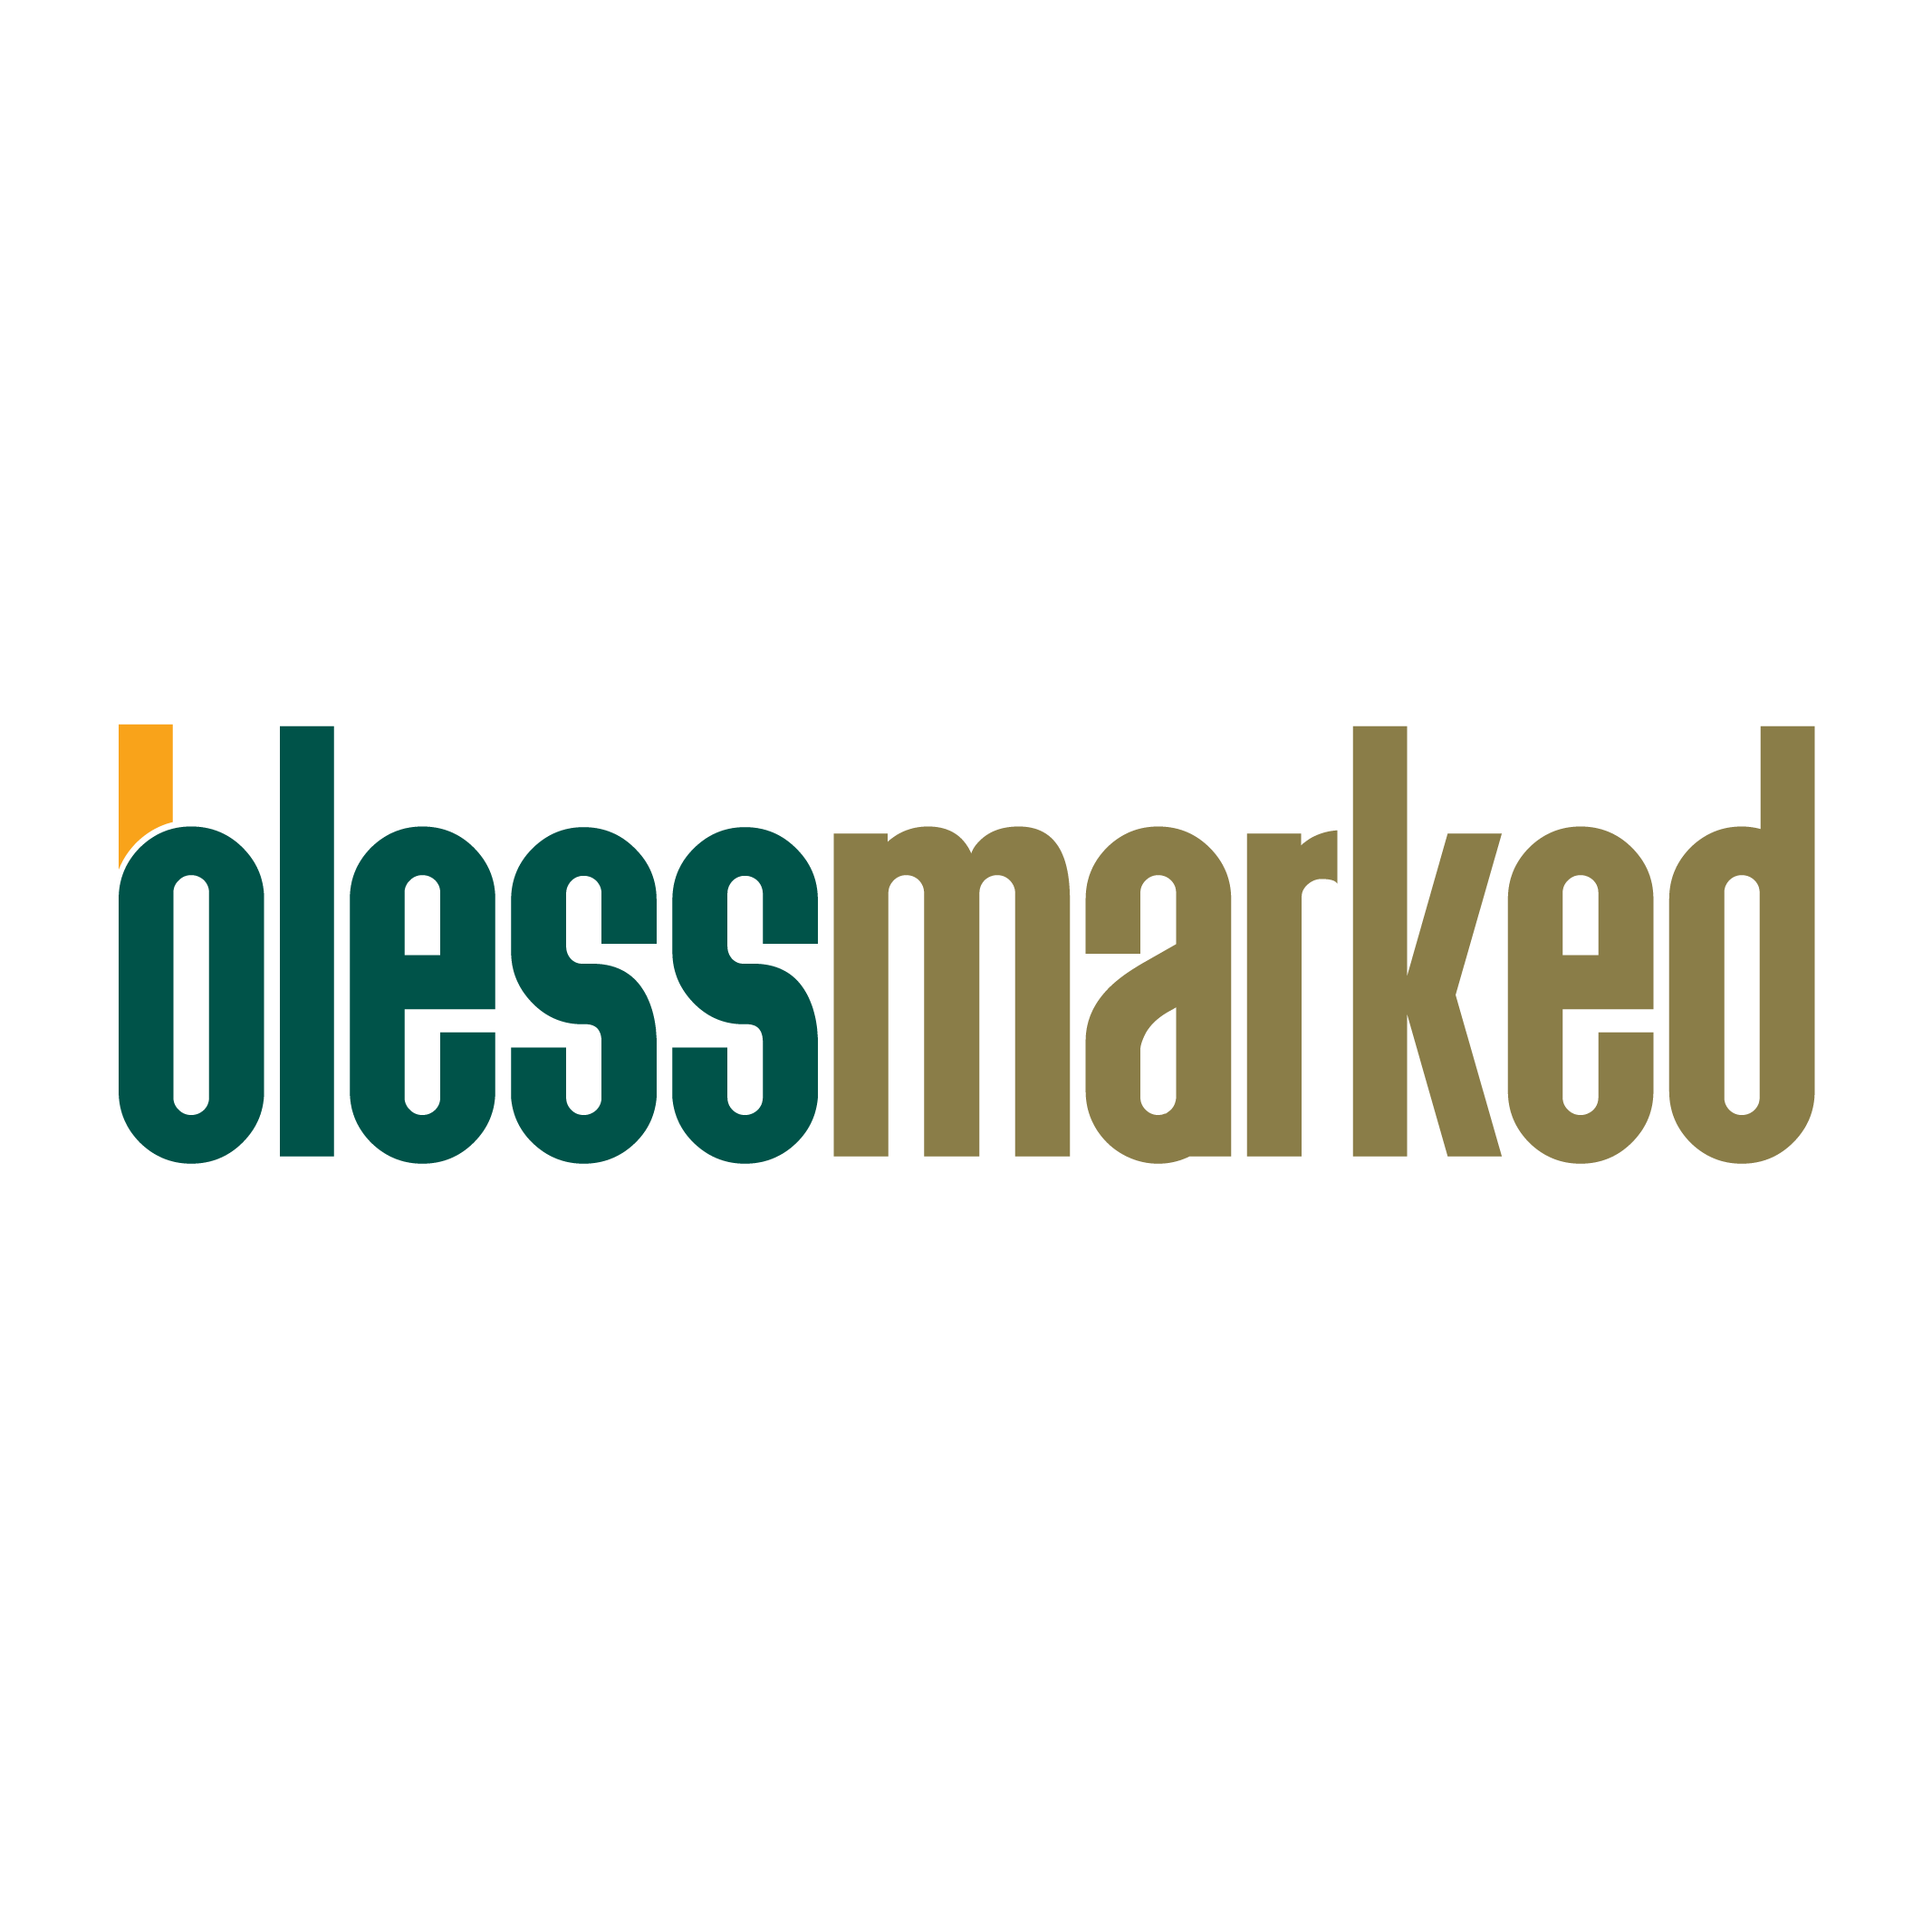 Blessmarked Real Estates Limited